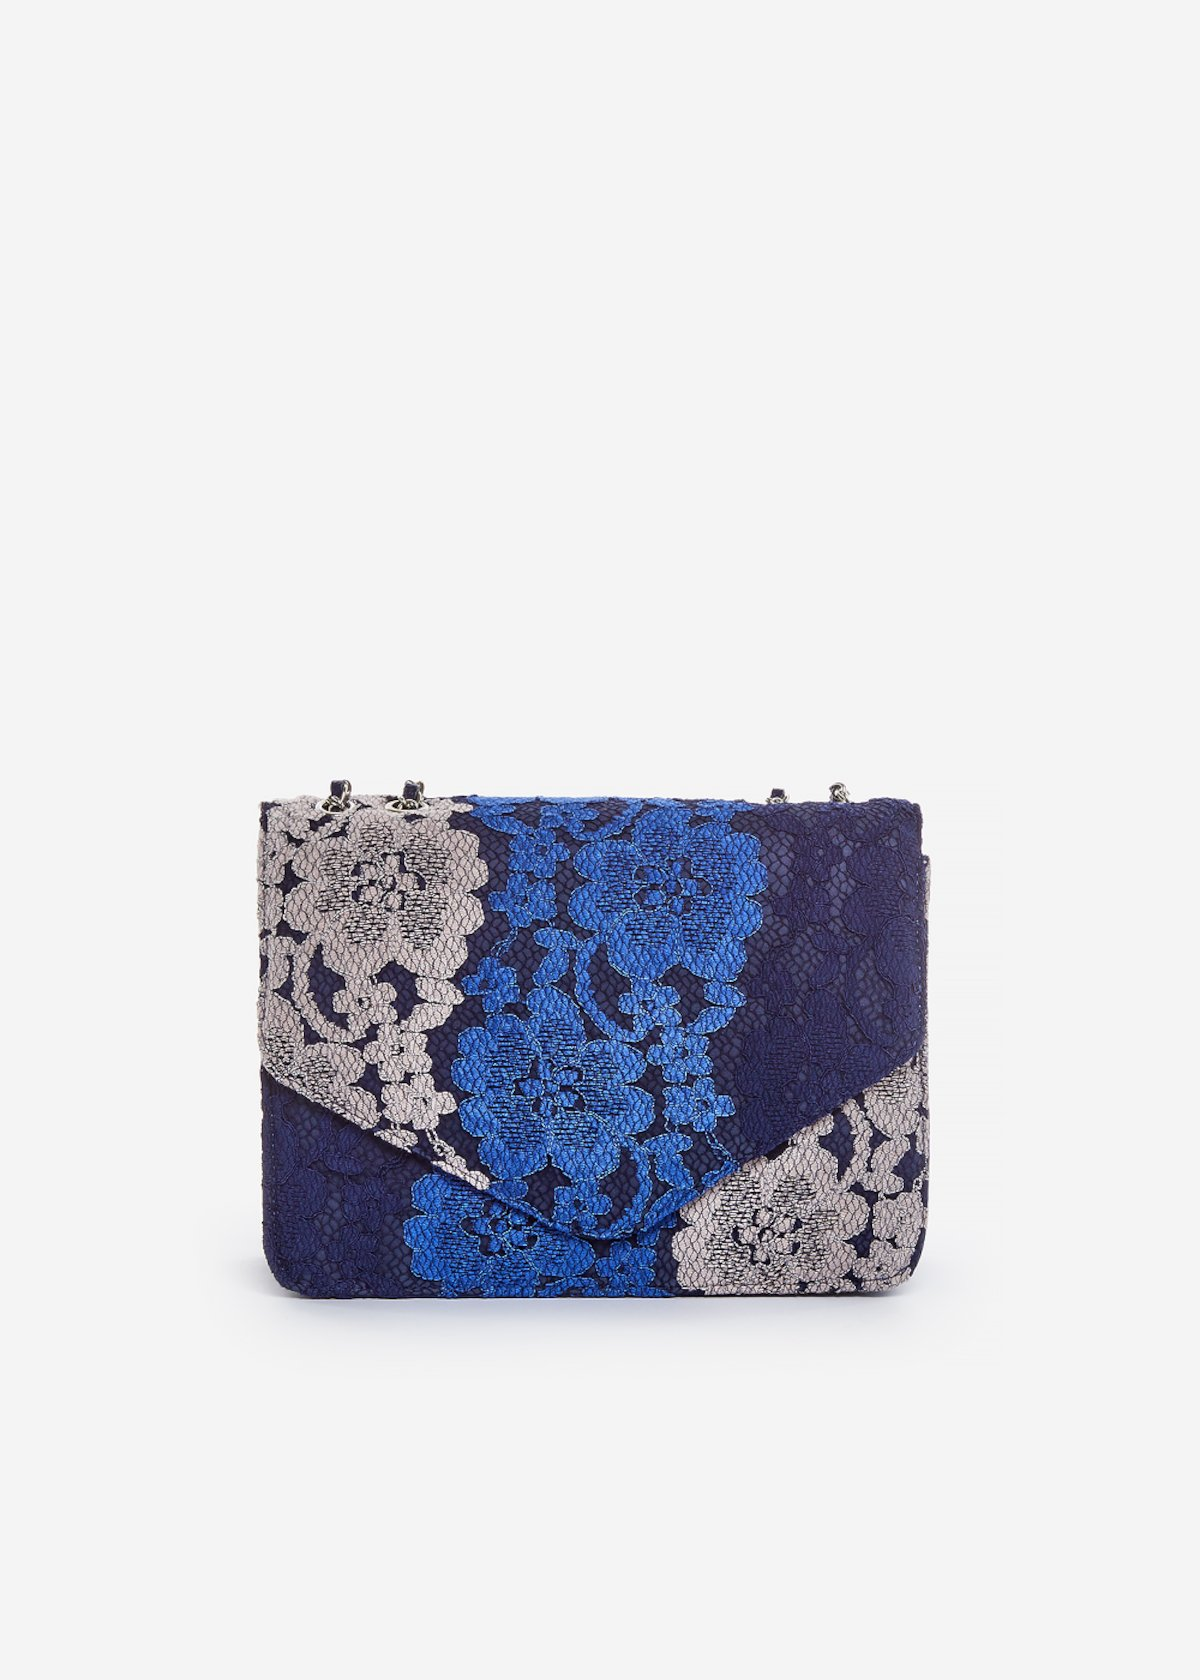 Pochette Bricia in pizzo tricolore - Medium Blue Fantasia